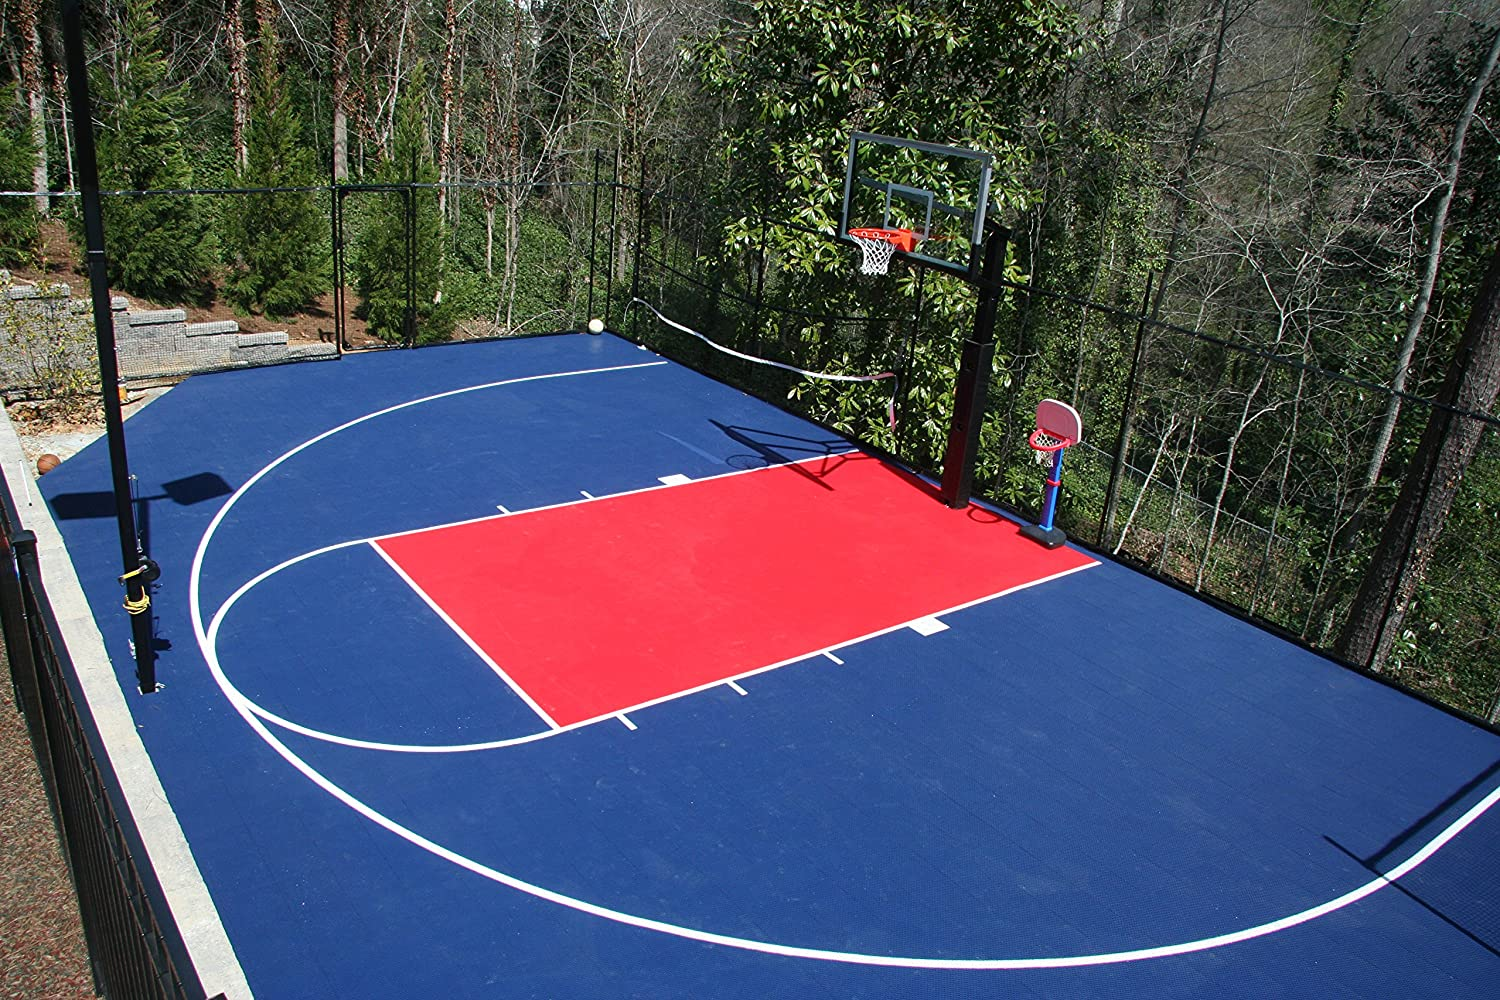 Amazon.com : IncStores Outdoor Baskteball Court Flooring   Half Court Kit  20u0027x24u0027 (Blue/Gray) : Sports U0026 Outdoors